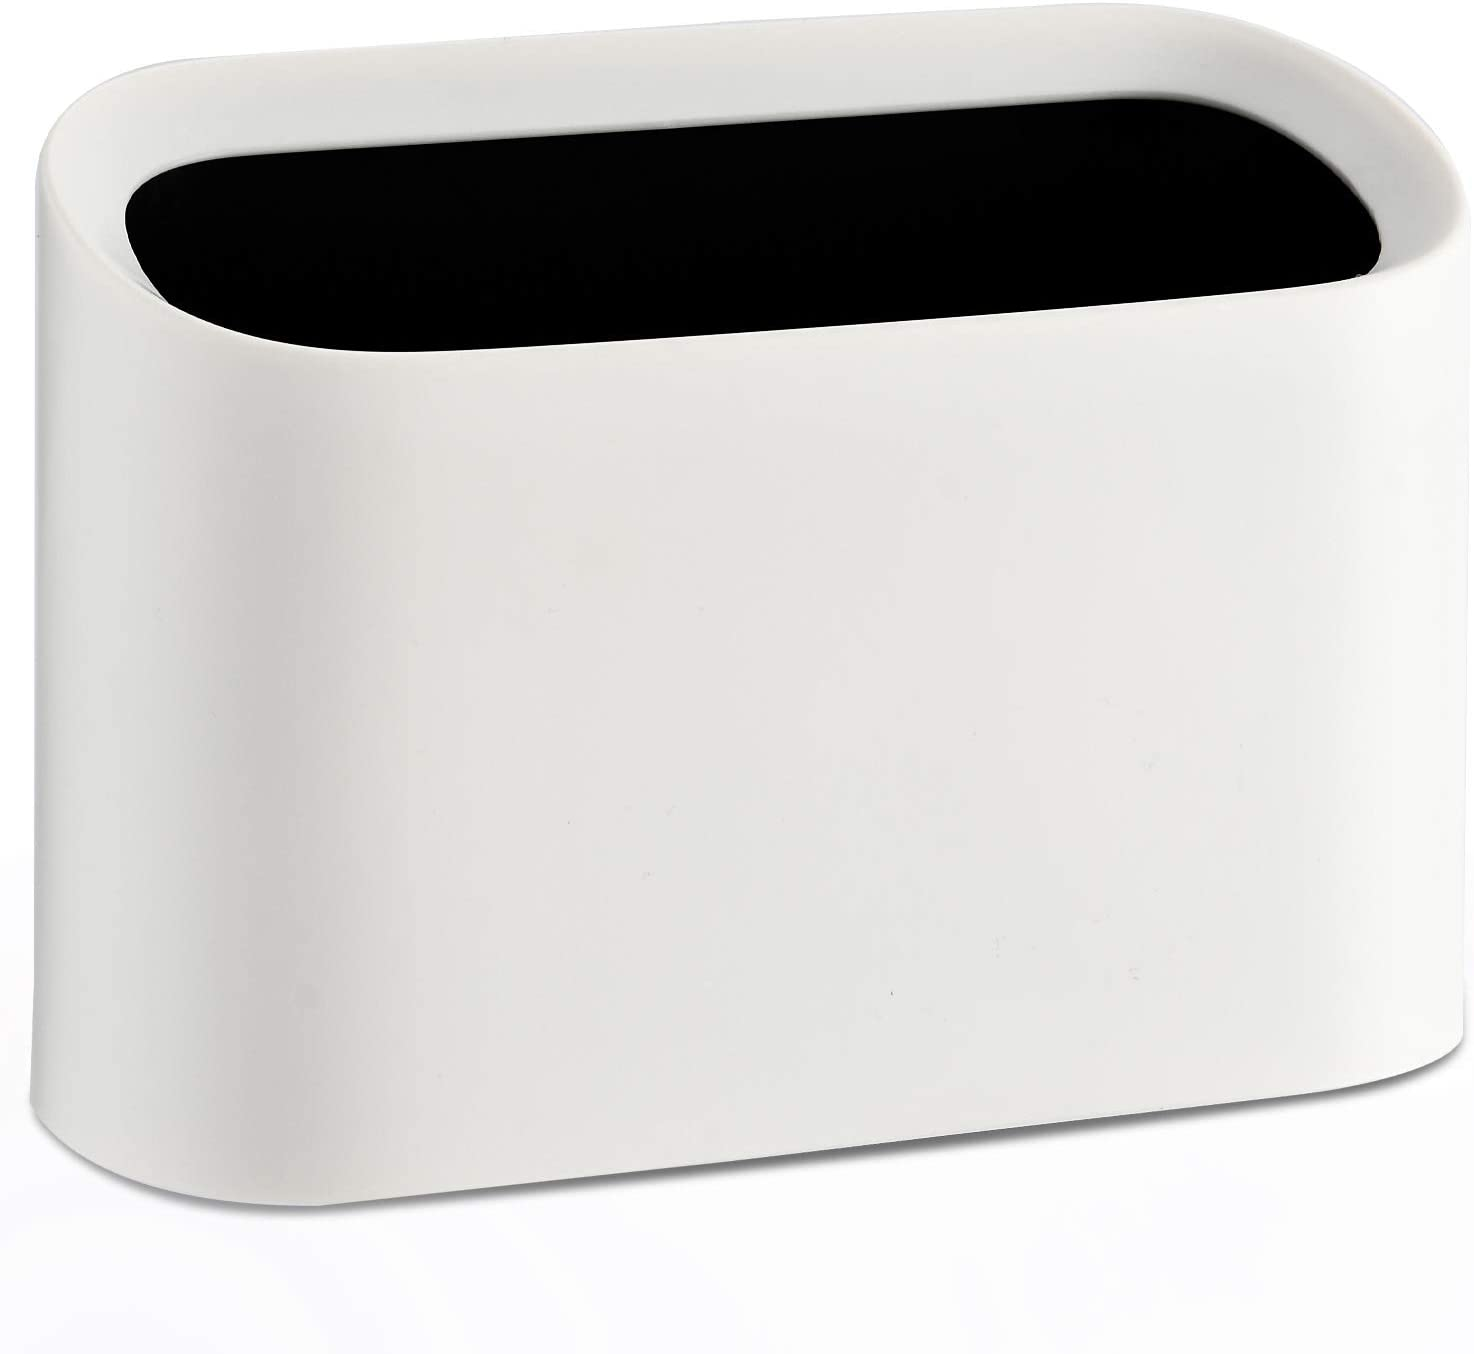 SUBEKYU Mini Desktop Wastebasket Trash Can, Plastic Small Tiny Office Countertop Garbage Can, White